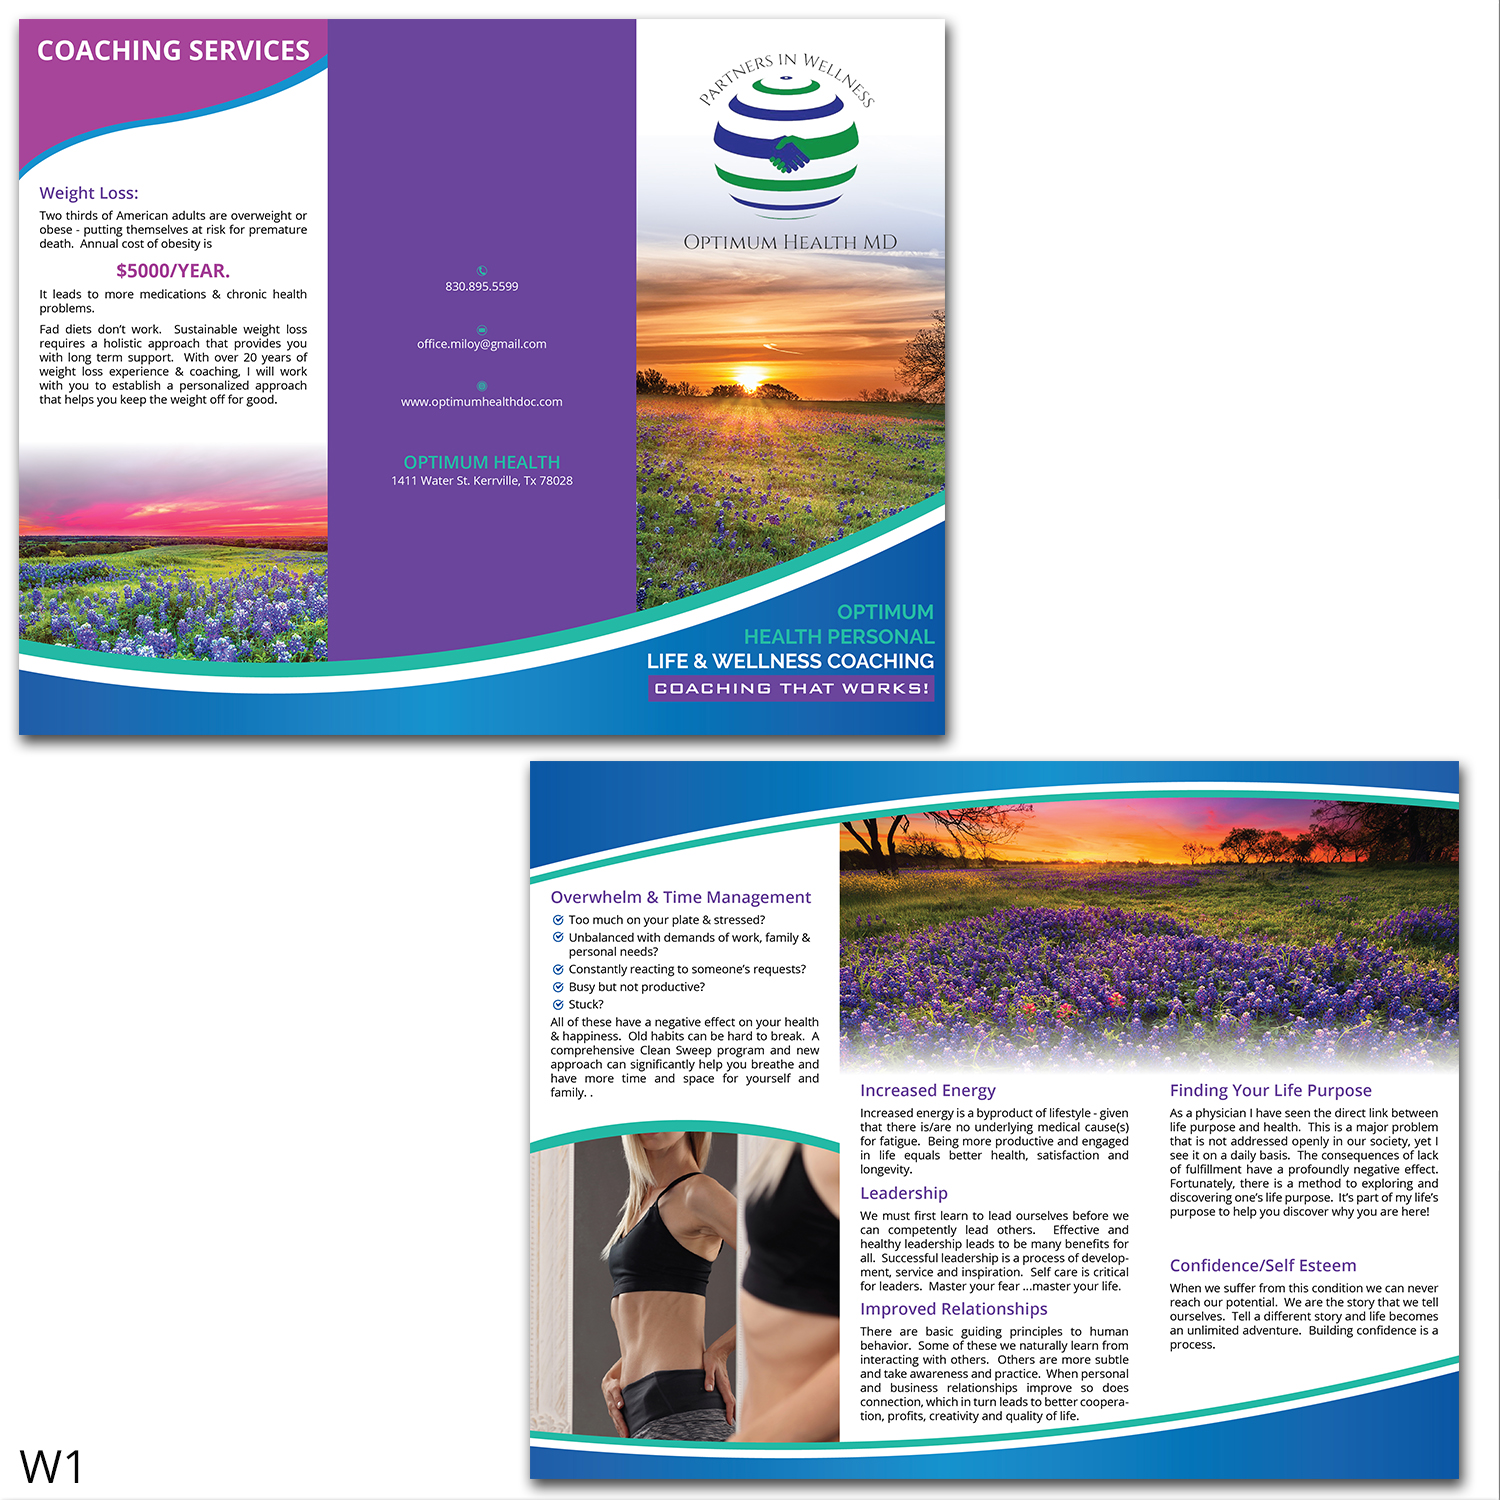 wellness coaching services